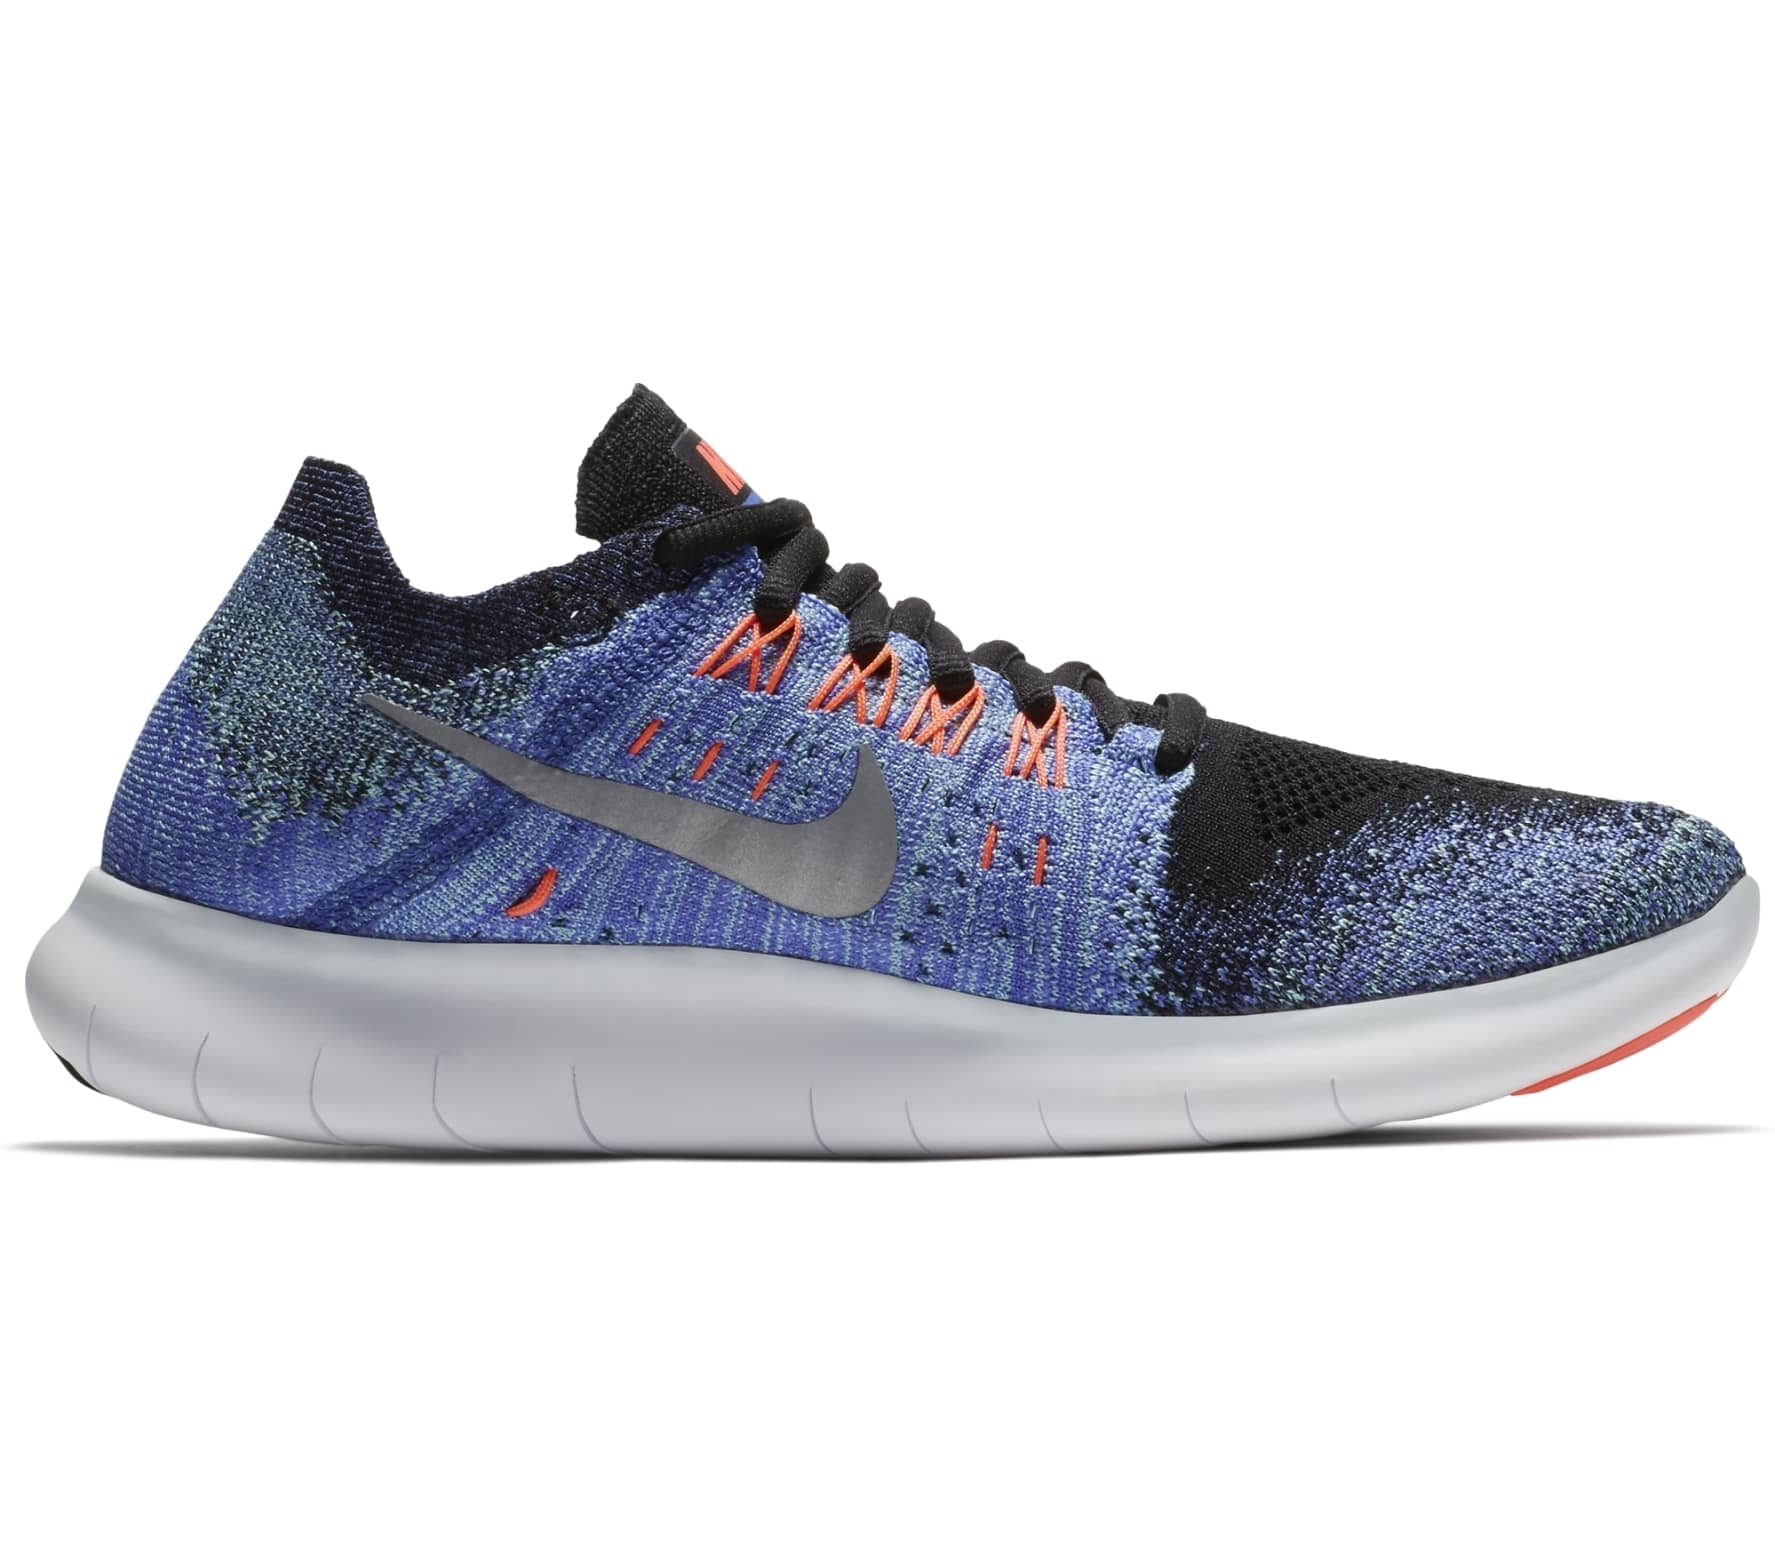 c3d838513318 ... where to buy nike free rn flyknit 2017 womens running shoes blue black  ed5c3 2ac4a